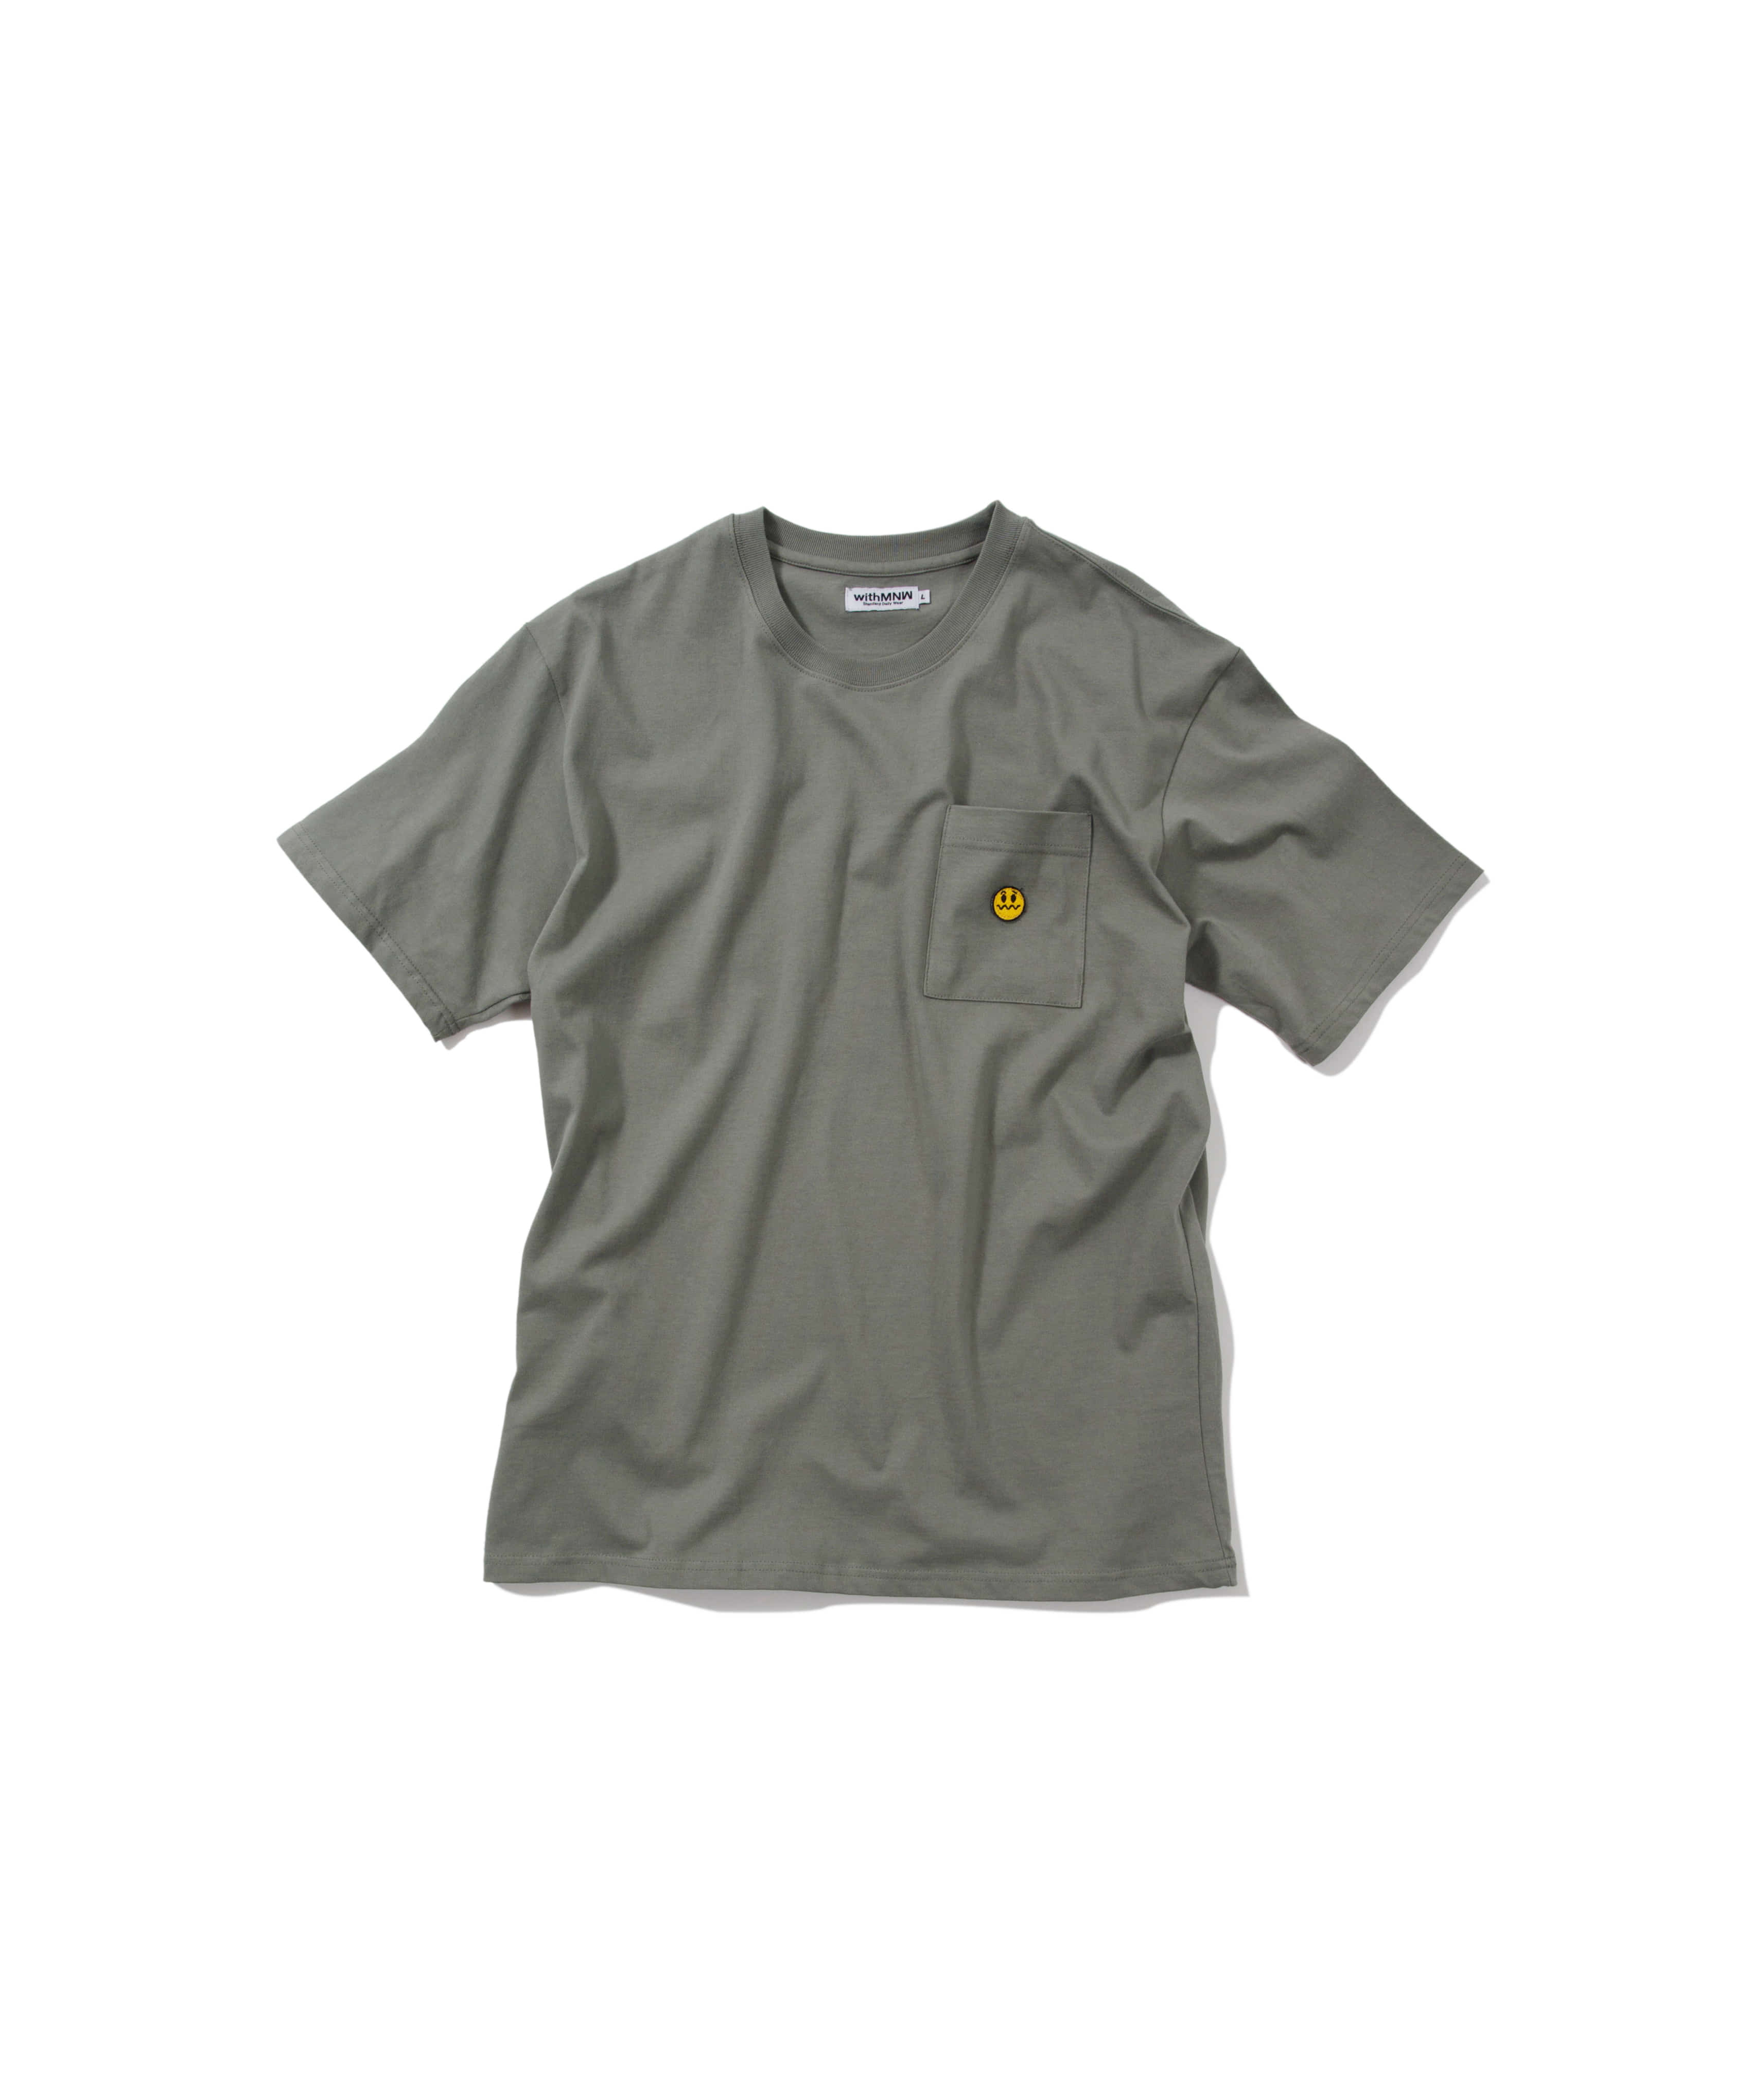 UNSMILE POCKET T-SHIRT GREY